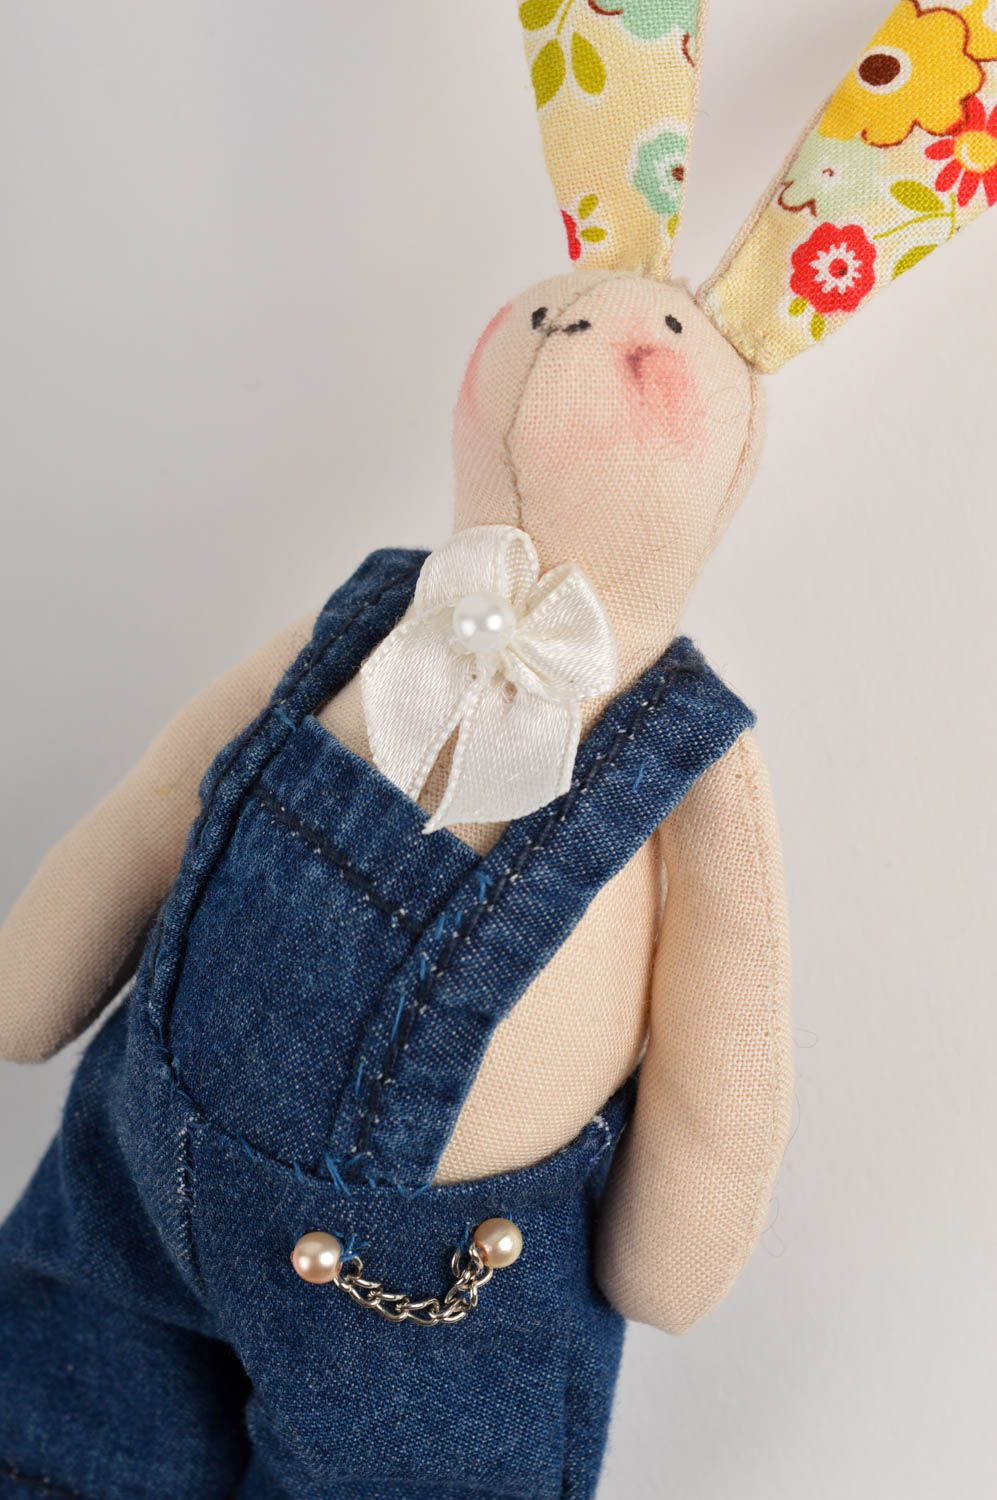 Handmade soft toy cute childrens toys best toys for kids birthday gift ideas - MADEheart.com